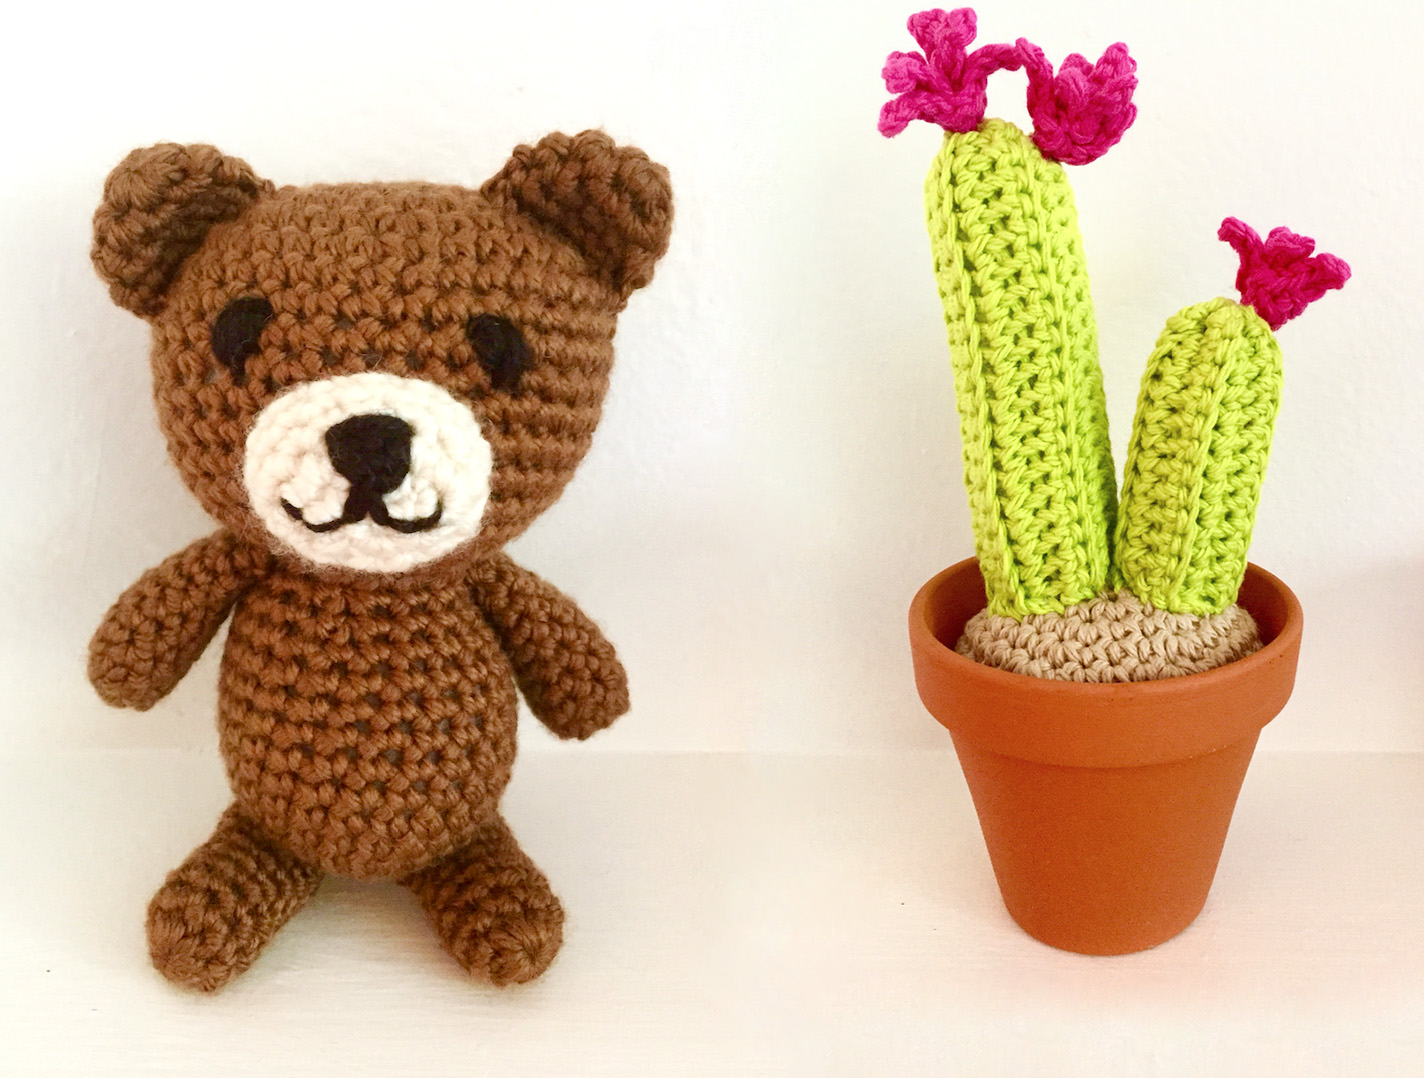 Cactus And Teddy Bear Patterns For Classes At Michaels Stores